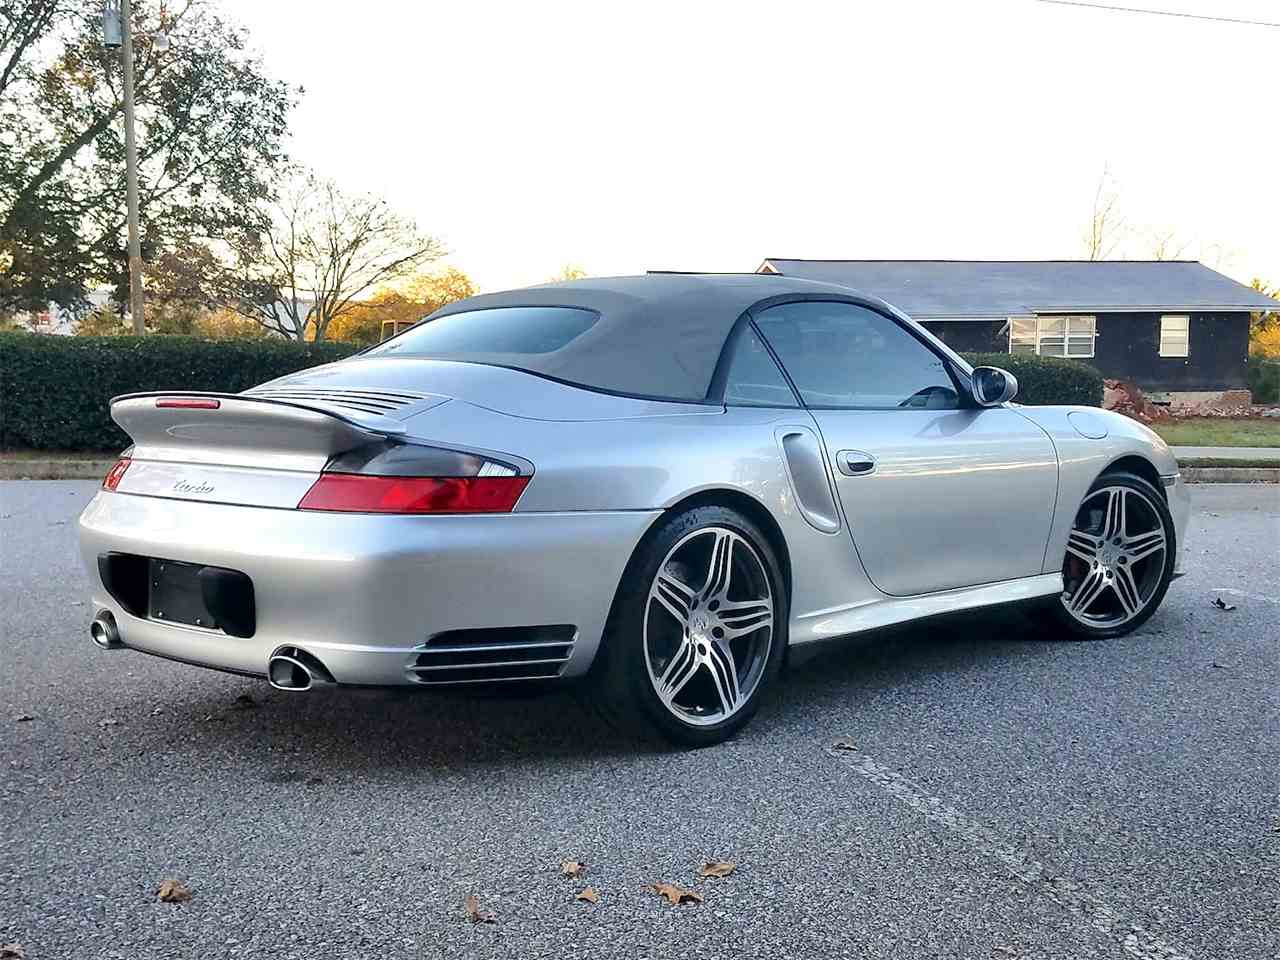 Large Picture of '04 Porsche 911 Carrera Turbo located in Georgia - $55,000.00 Offered by Dick Barbour Performance - MCDK